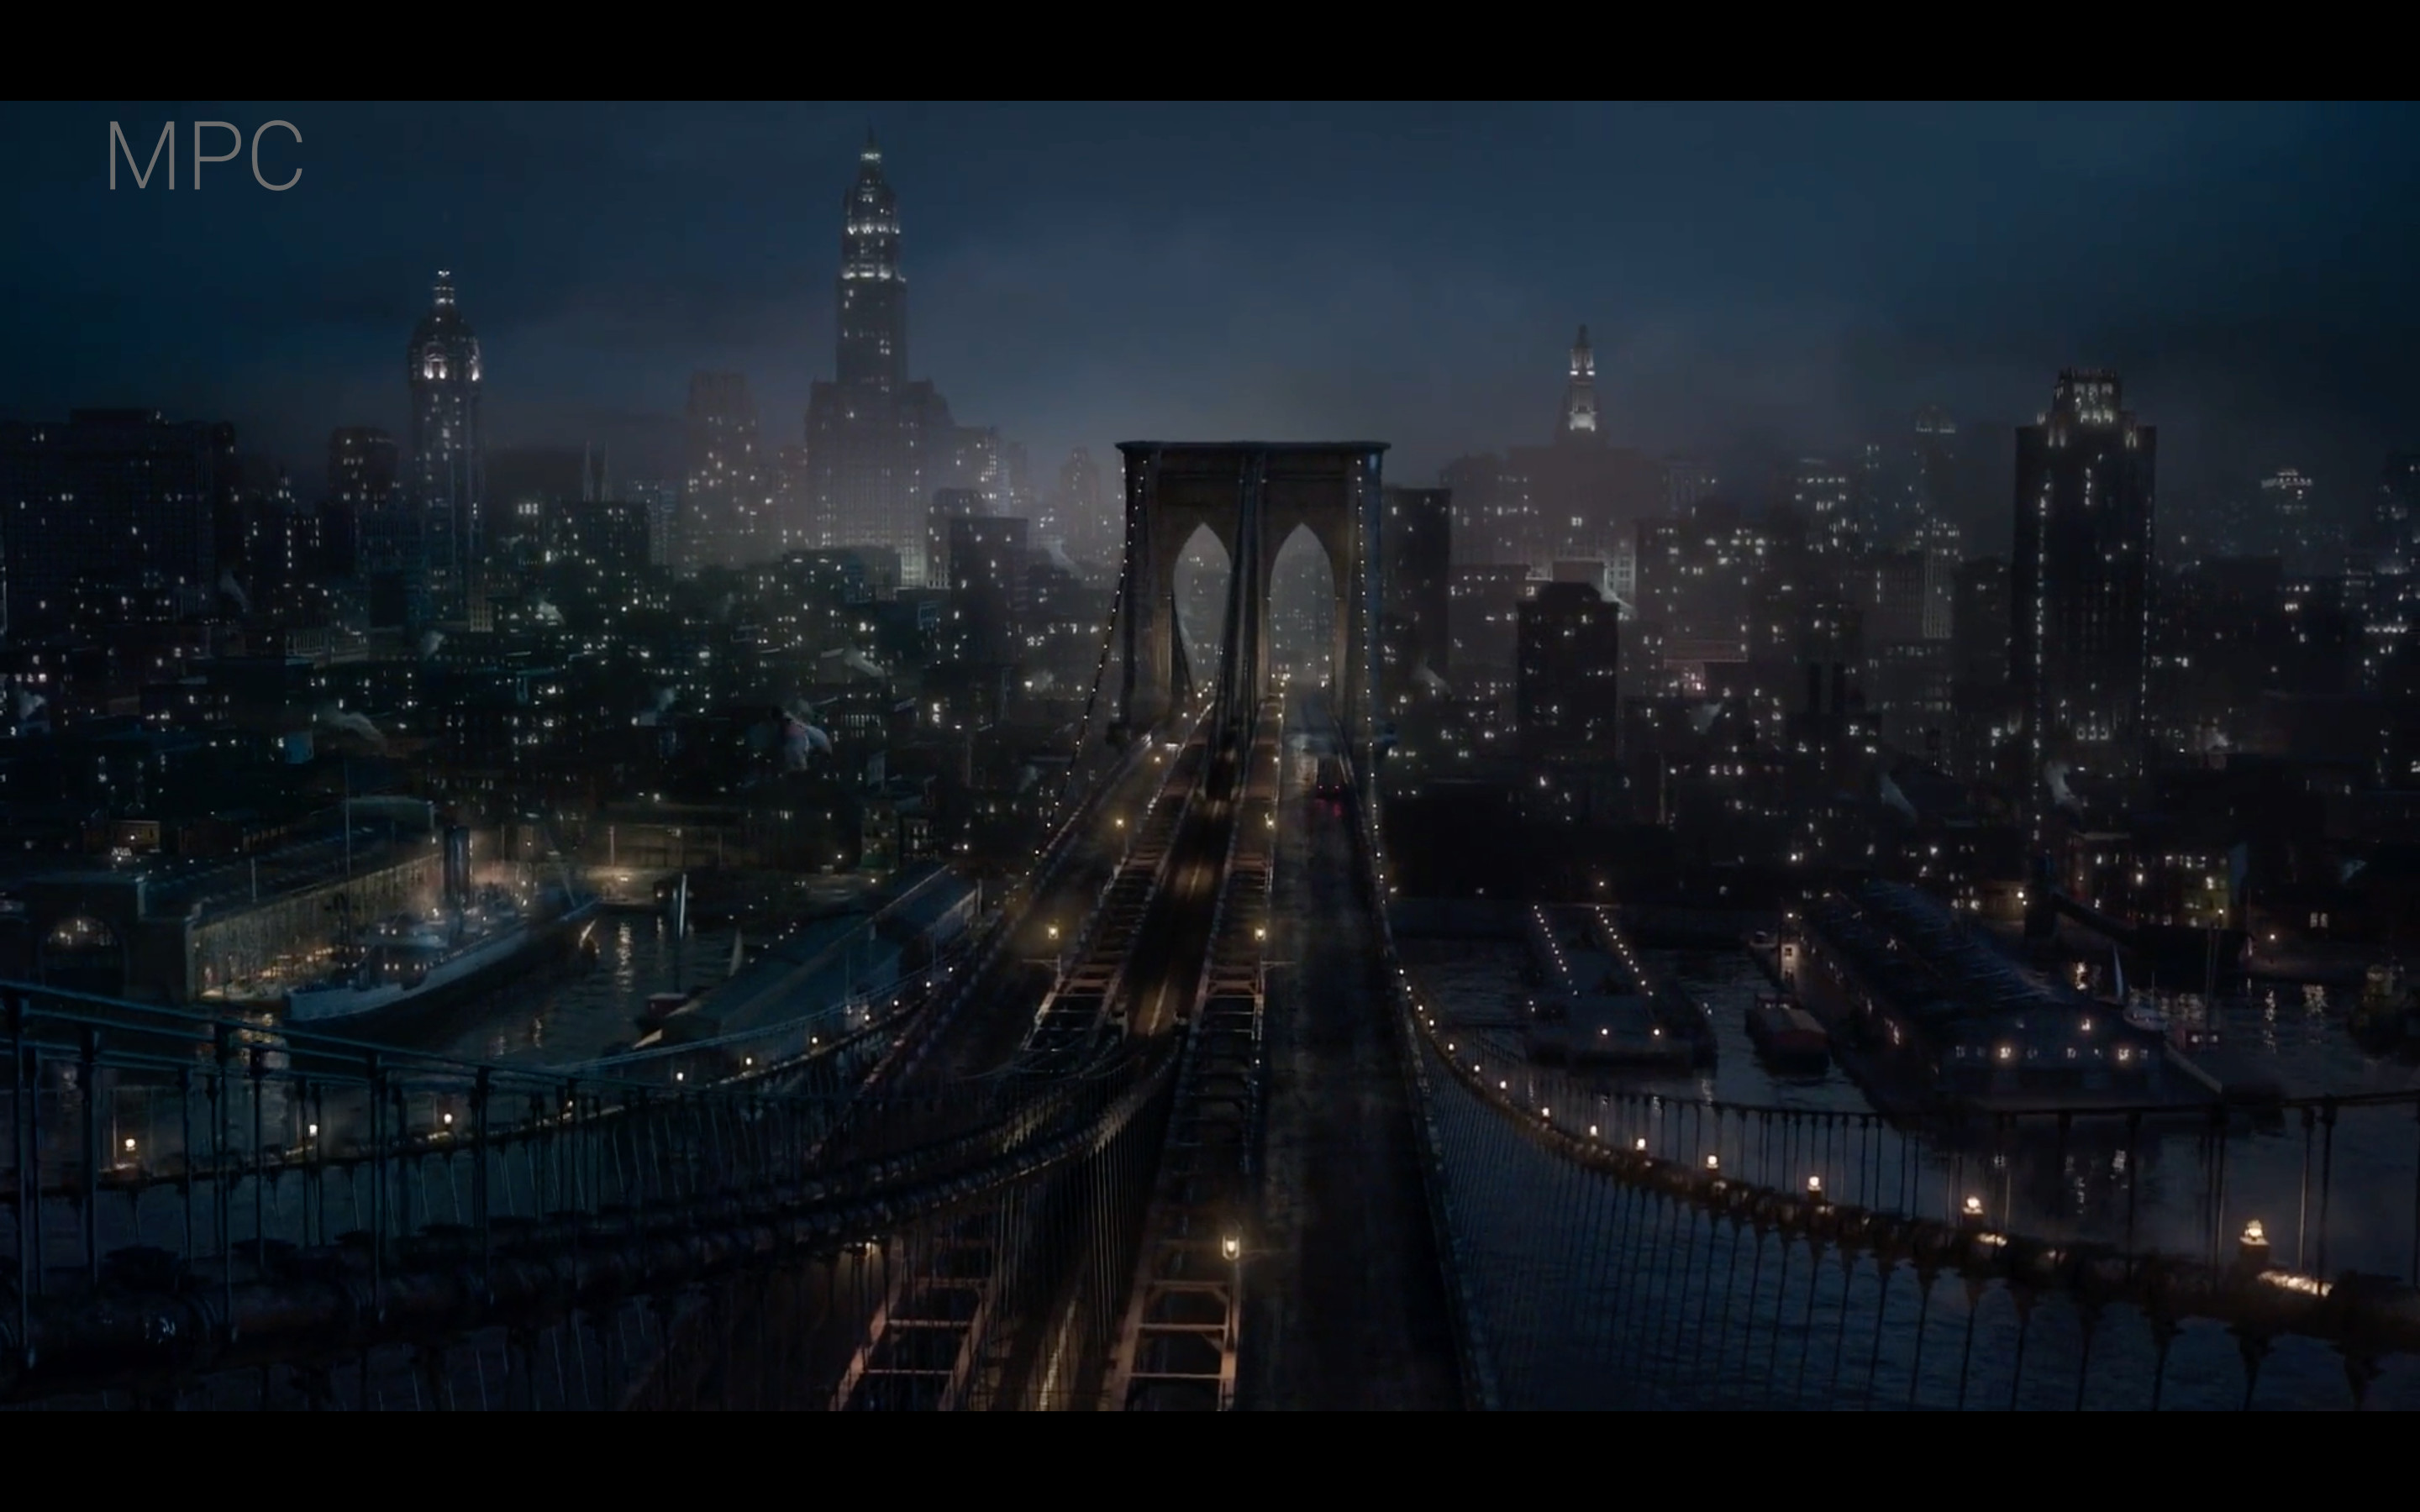 Environment layout and set dressing of the lower Manhattan and Brooklyn in 1920s and lookdev concept